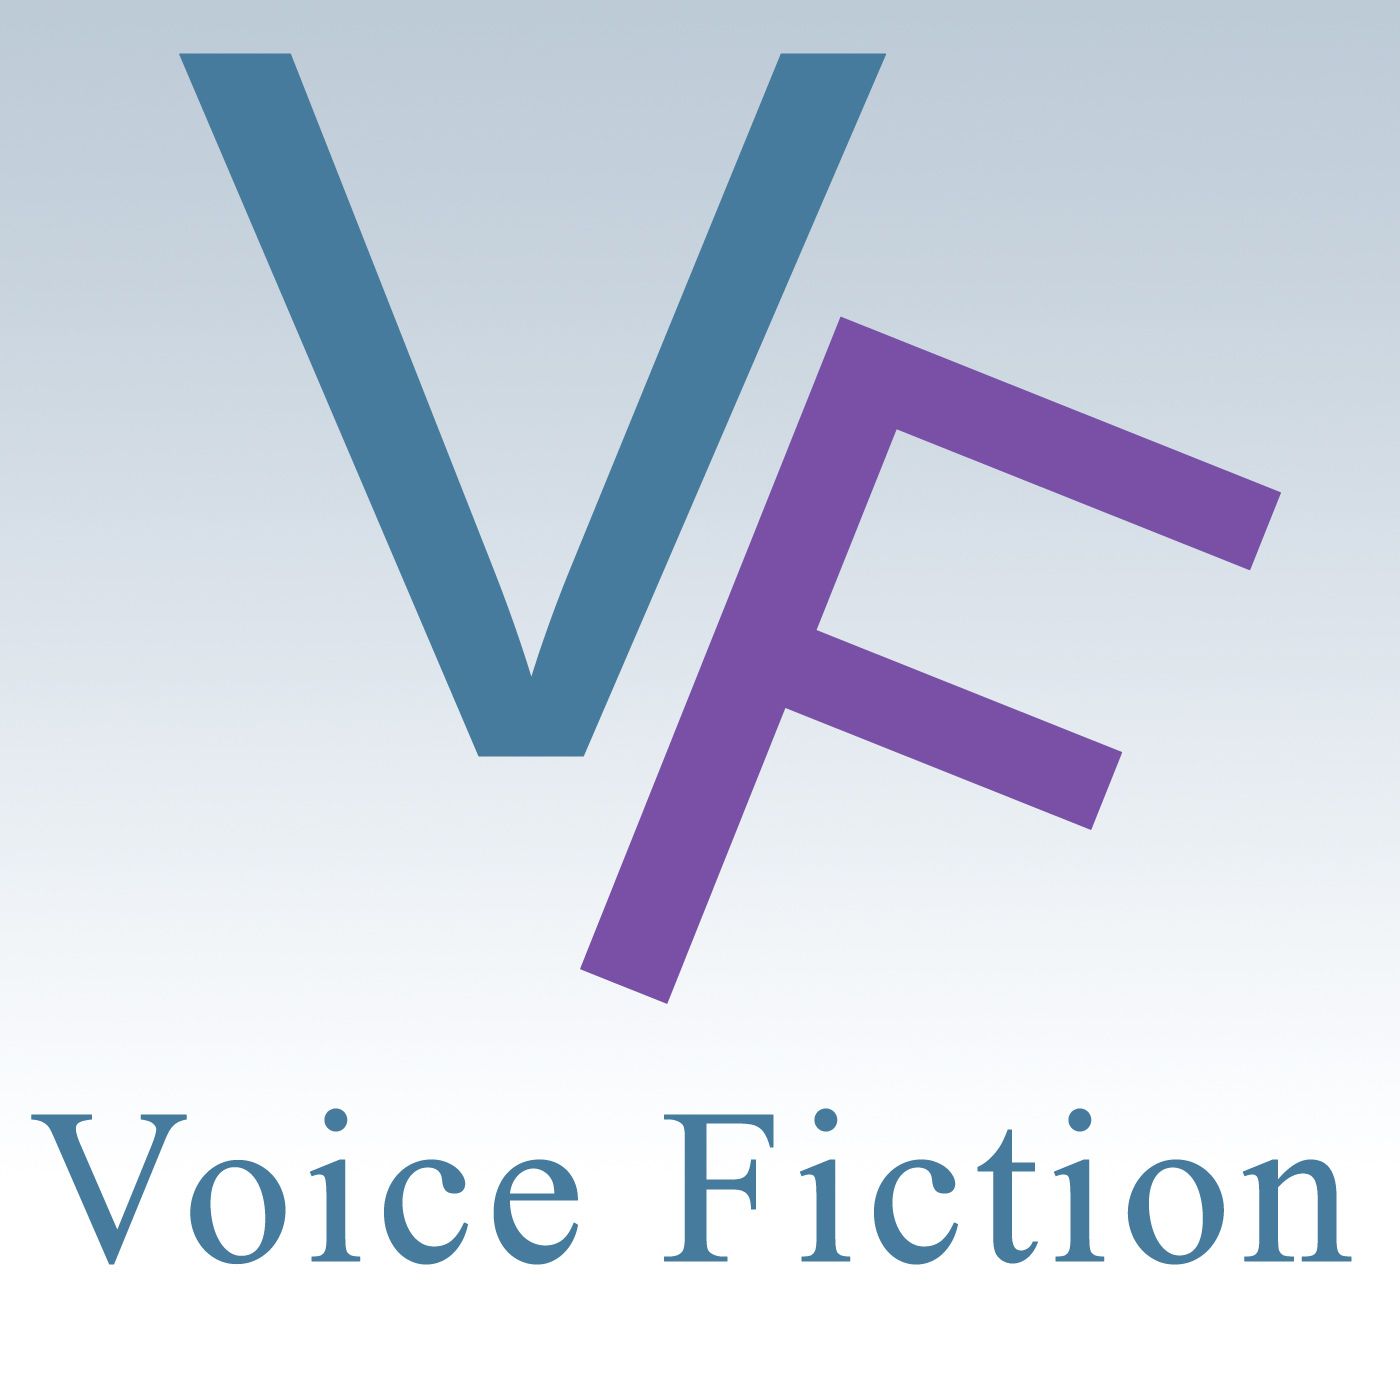 Voice Fiction